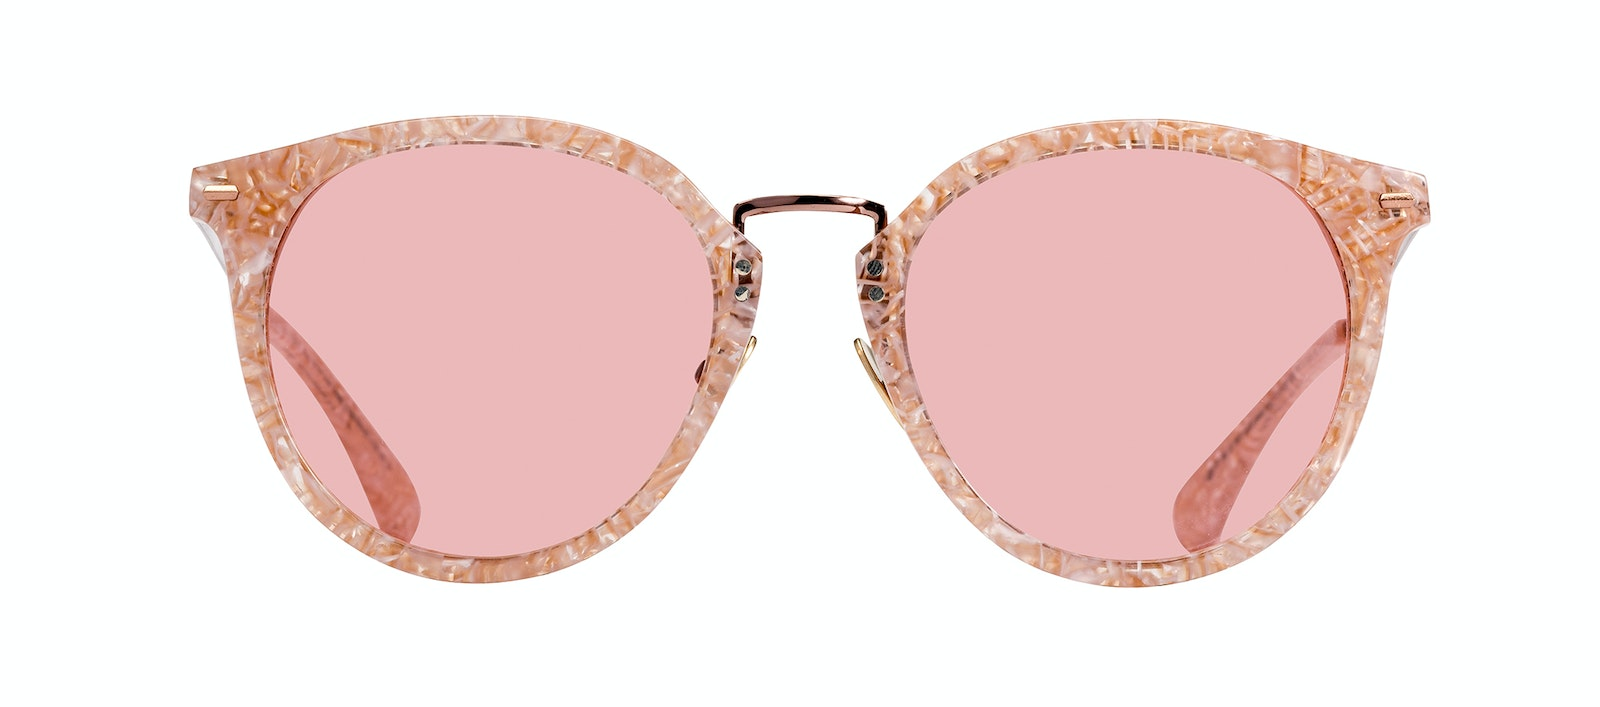 Affordable Fashion Glasses Round Sunglasses Women Poppy Provence Front